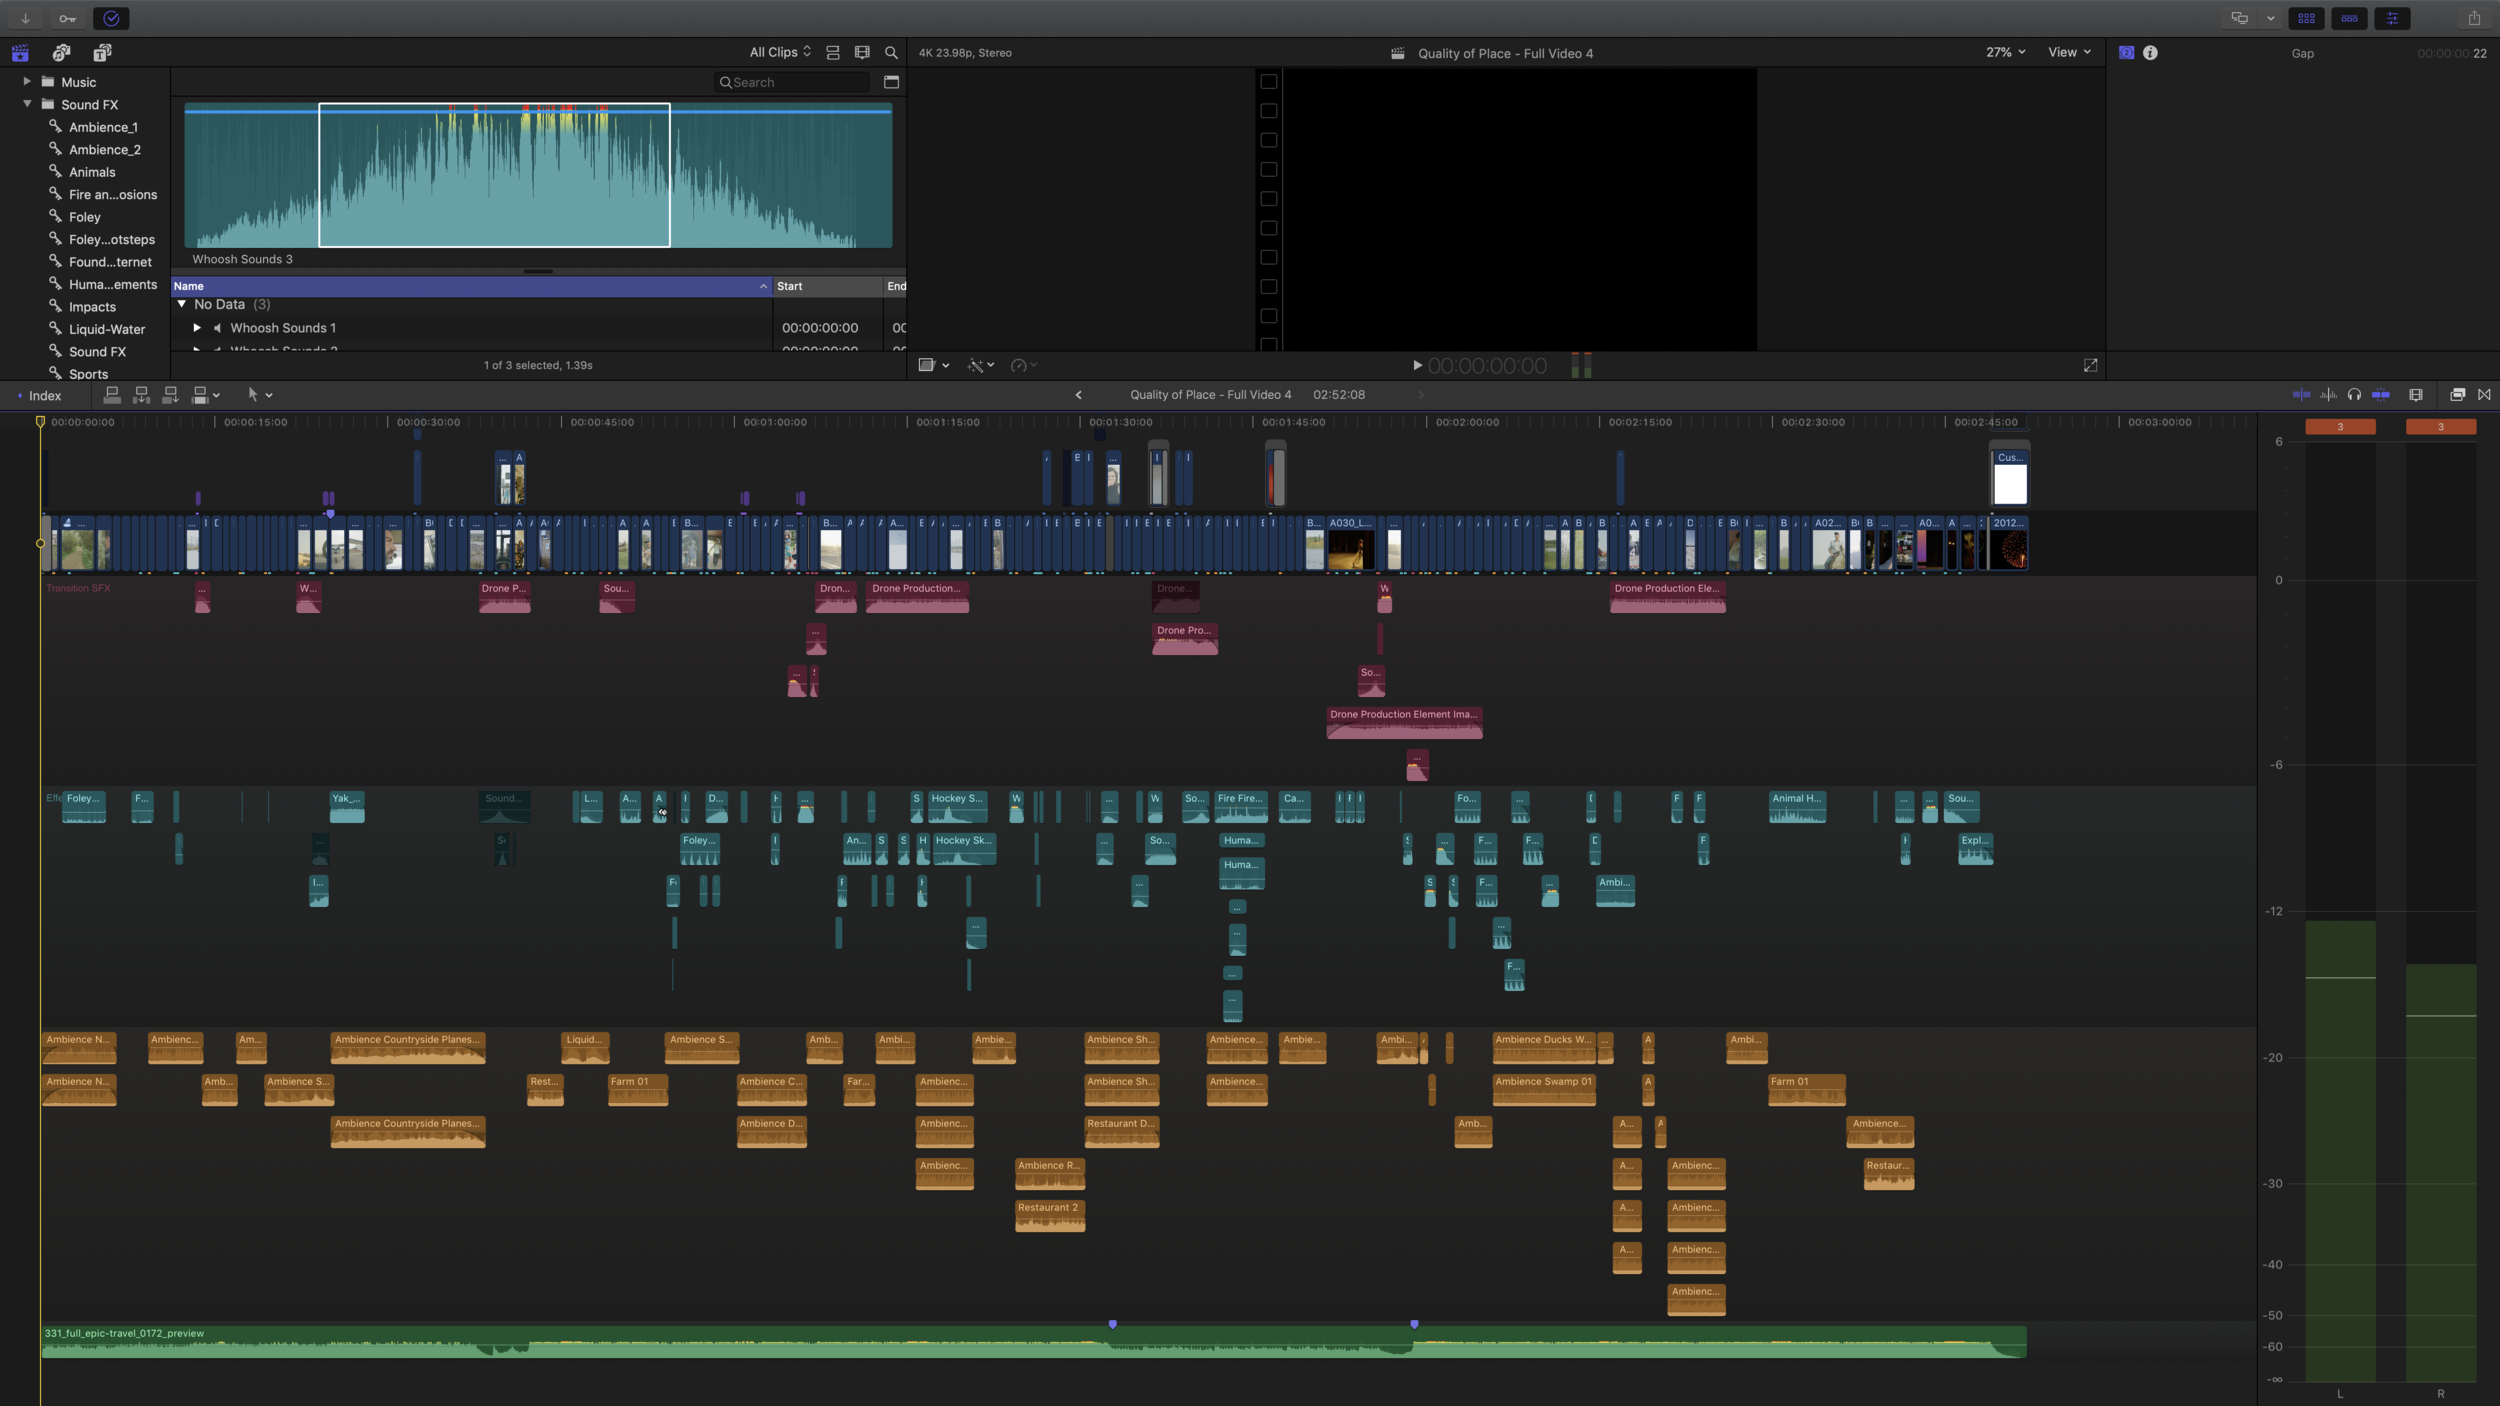 A screen capture of the Final Cut Pro X timeline of the project, including sound design.